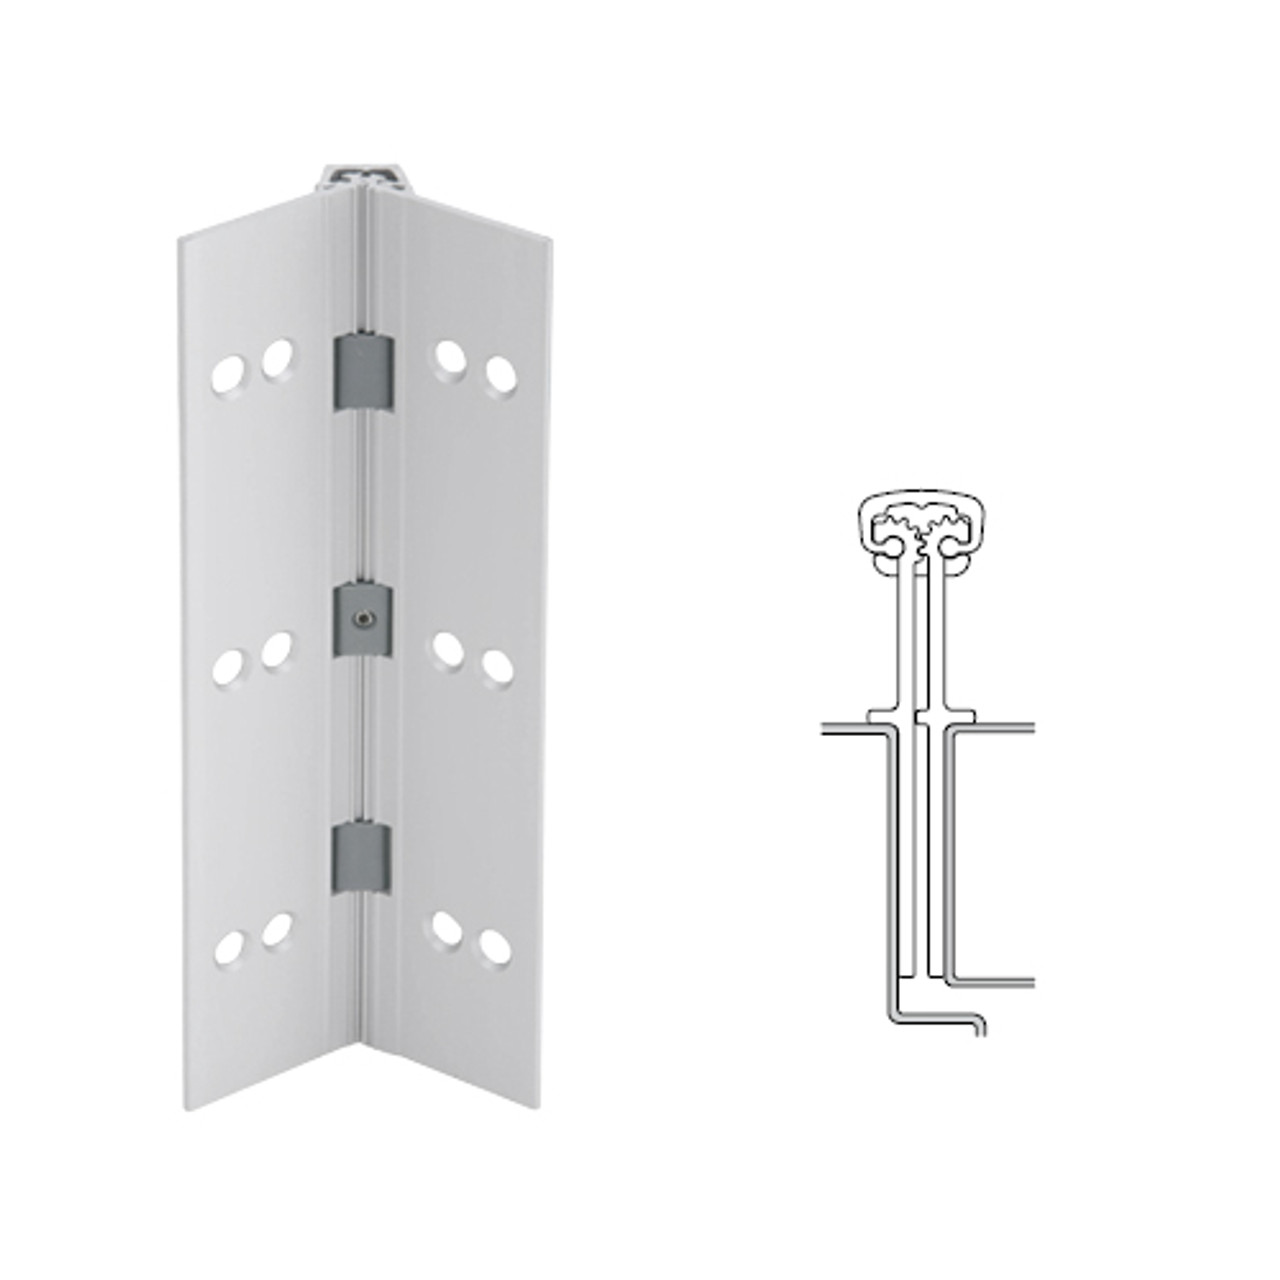 040XY-US28-120-SECWDHM IVES Full Mortise Continuous Geared Hinges with Security Screws - Hex Pin Drive in Satin Aluminum